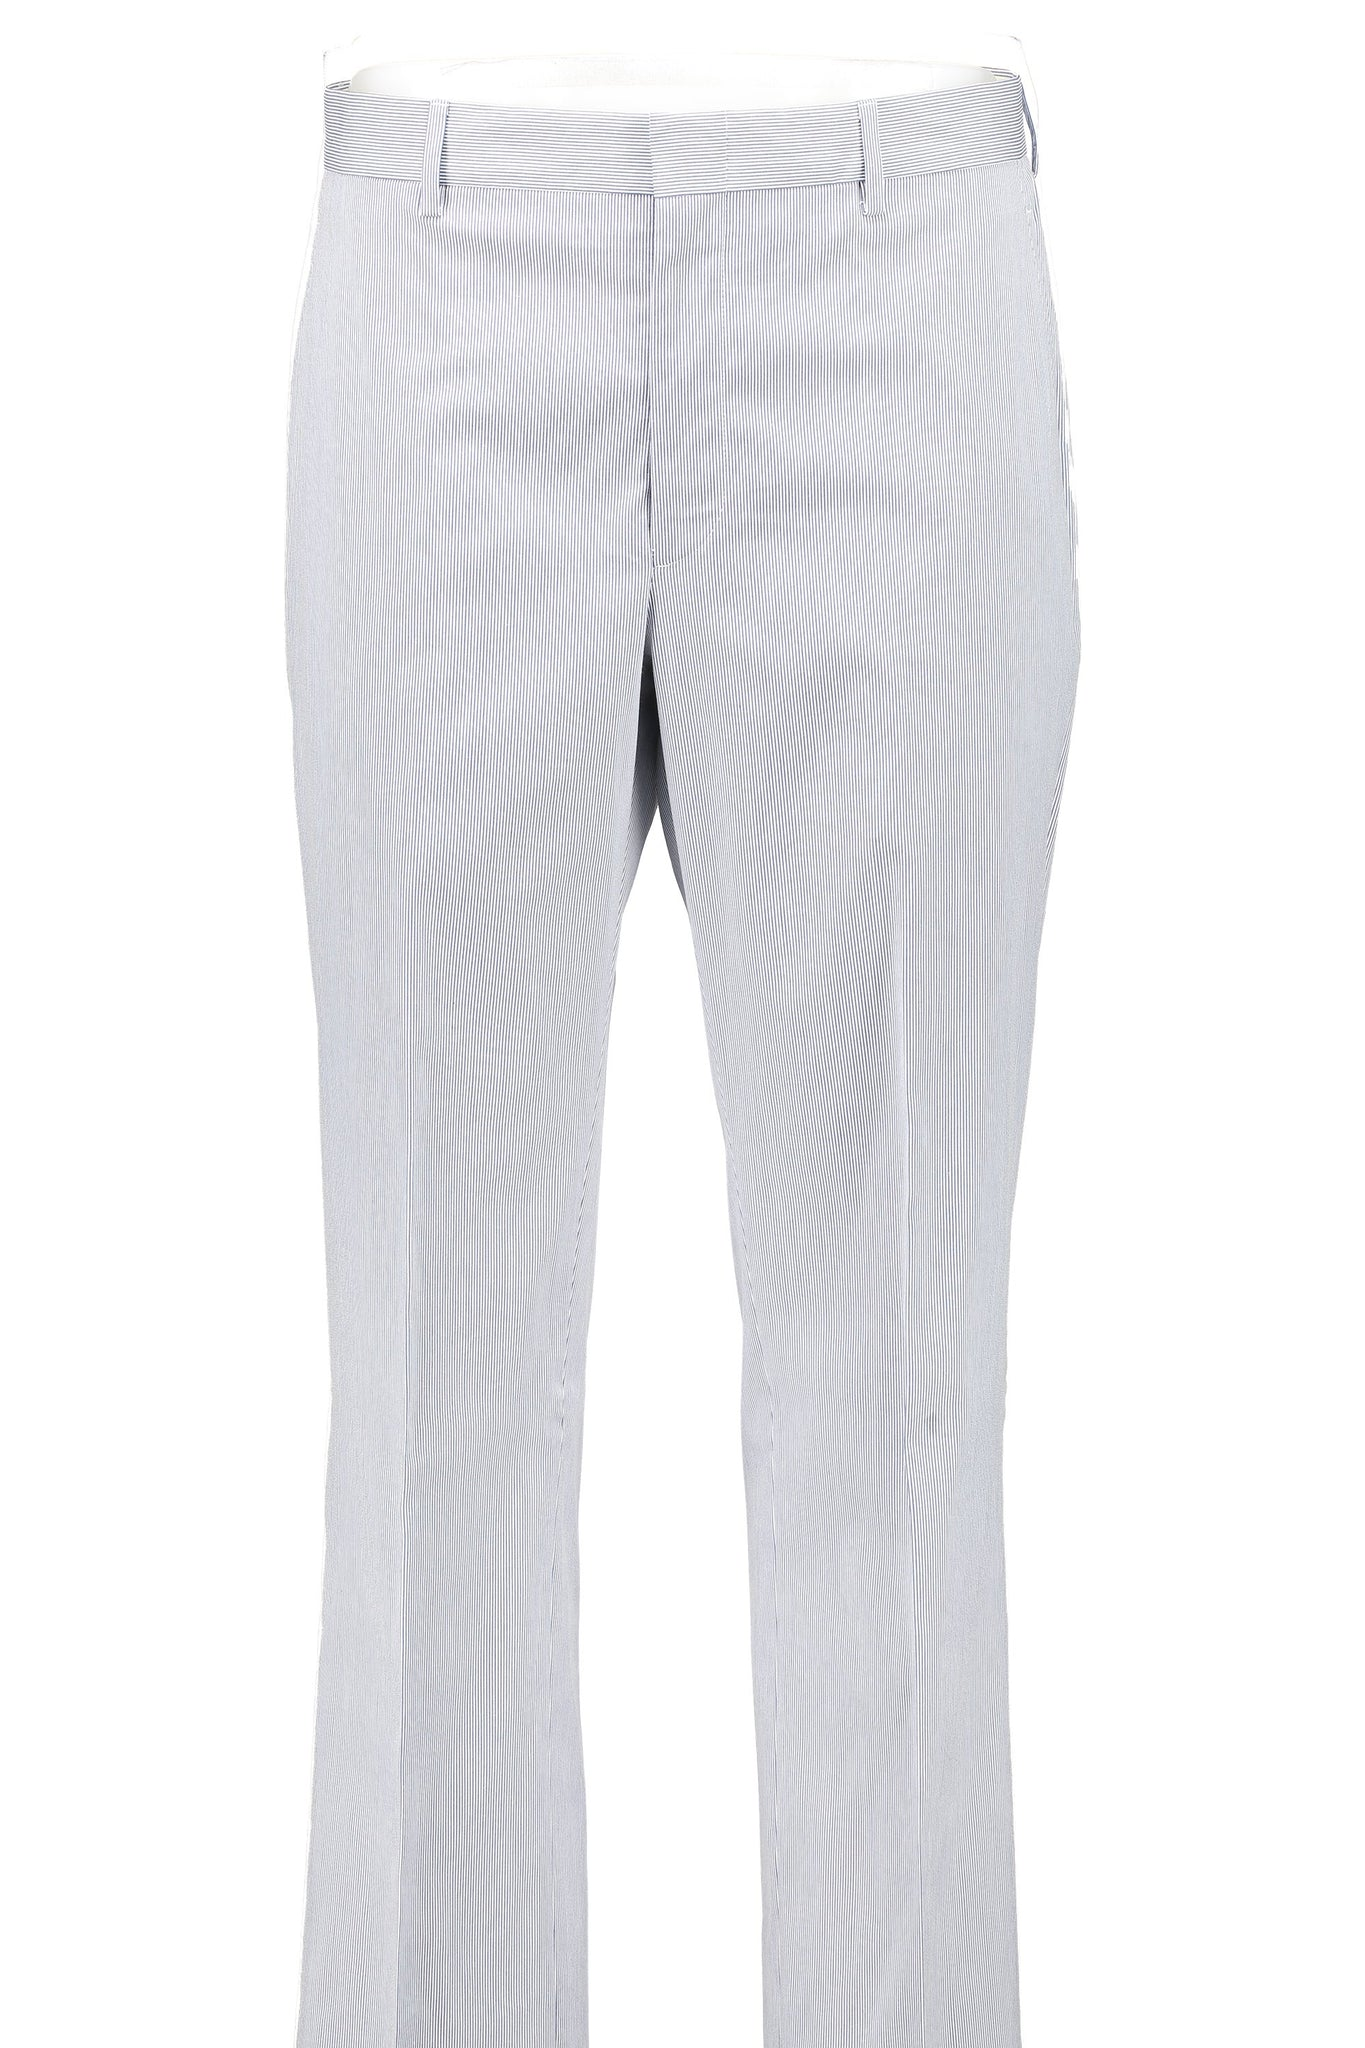 Classic Fit Blue & White Pincord Cotton Suit Separate Flat Front Pants -  Hardwick.com